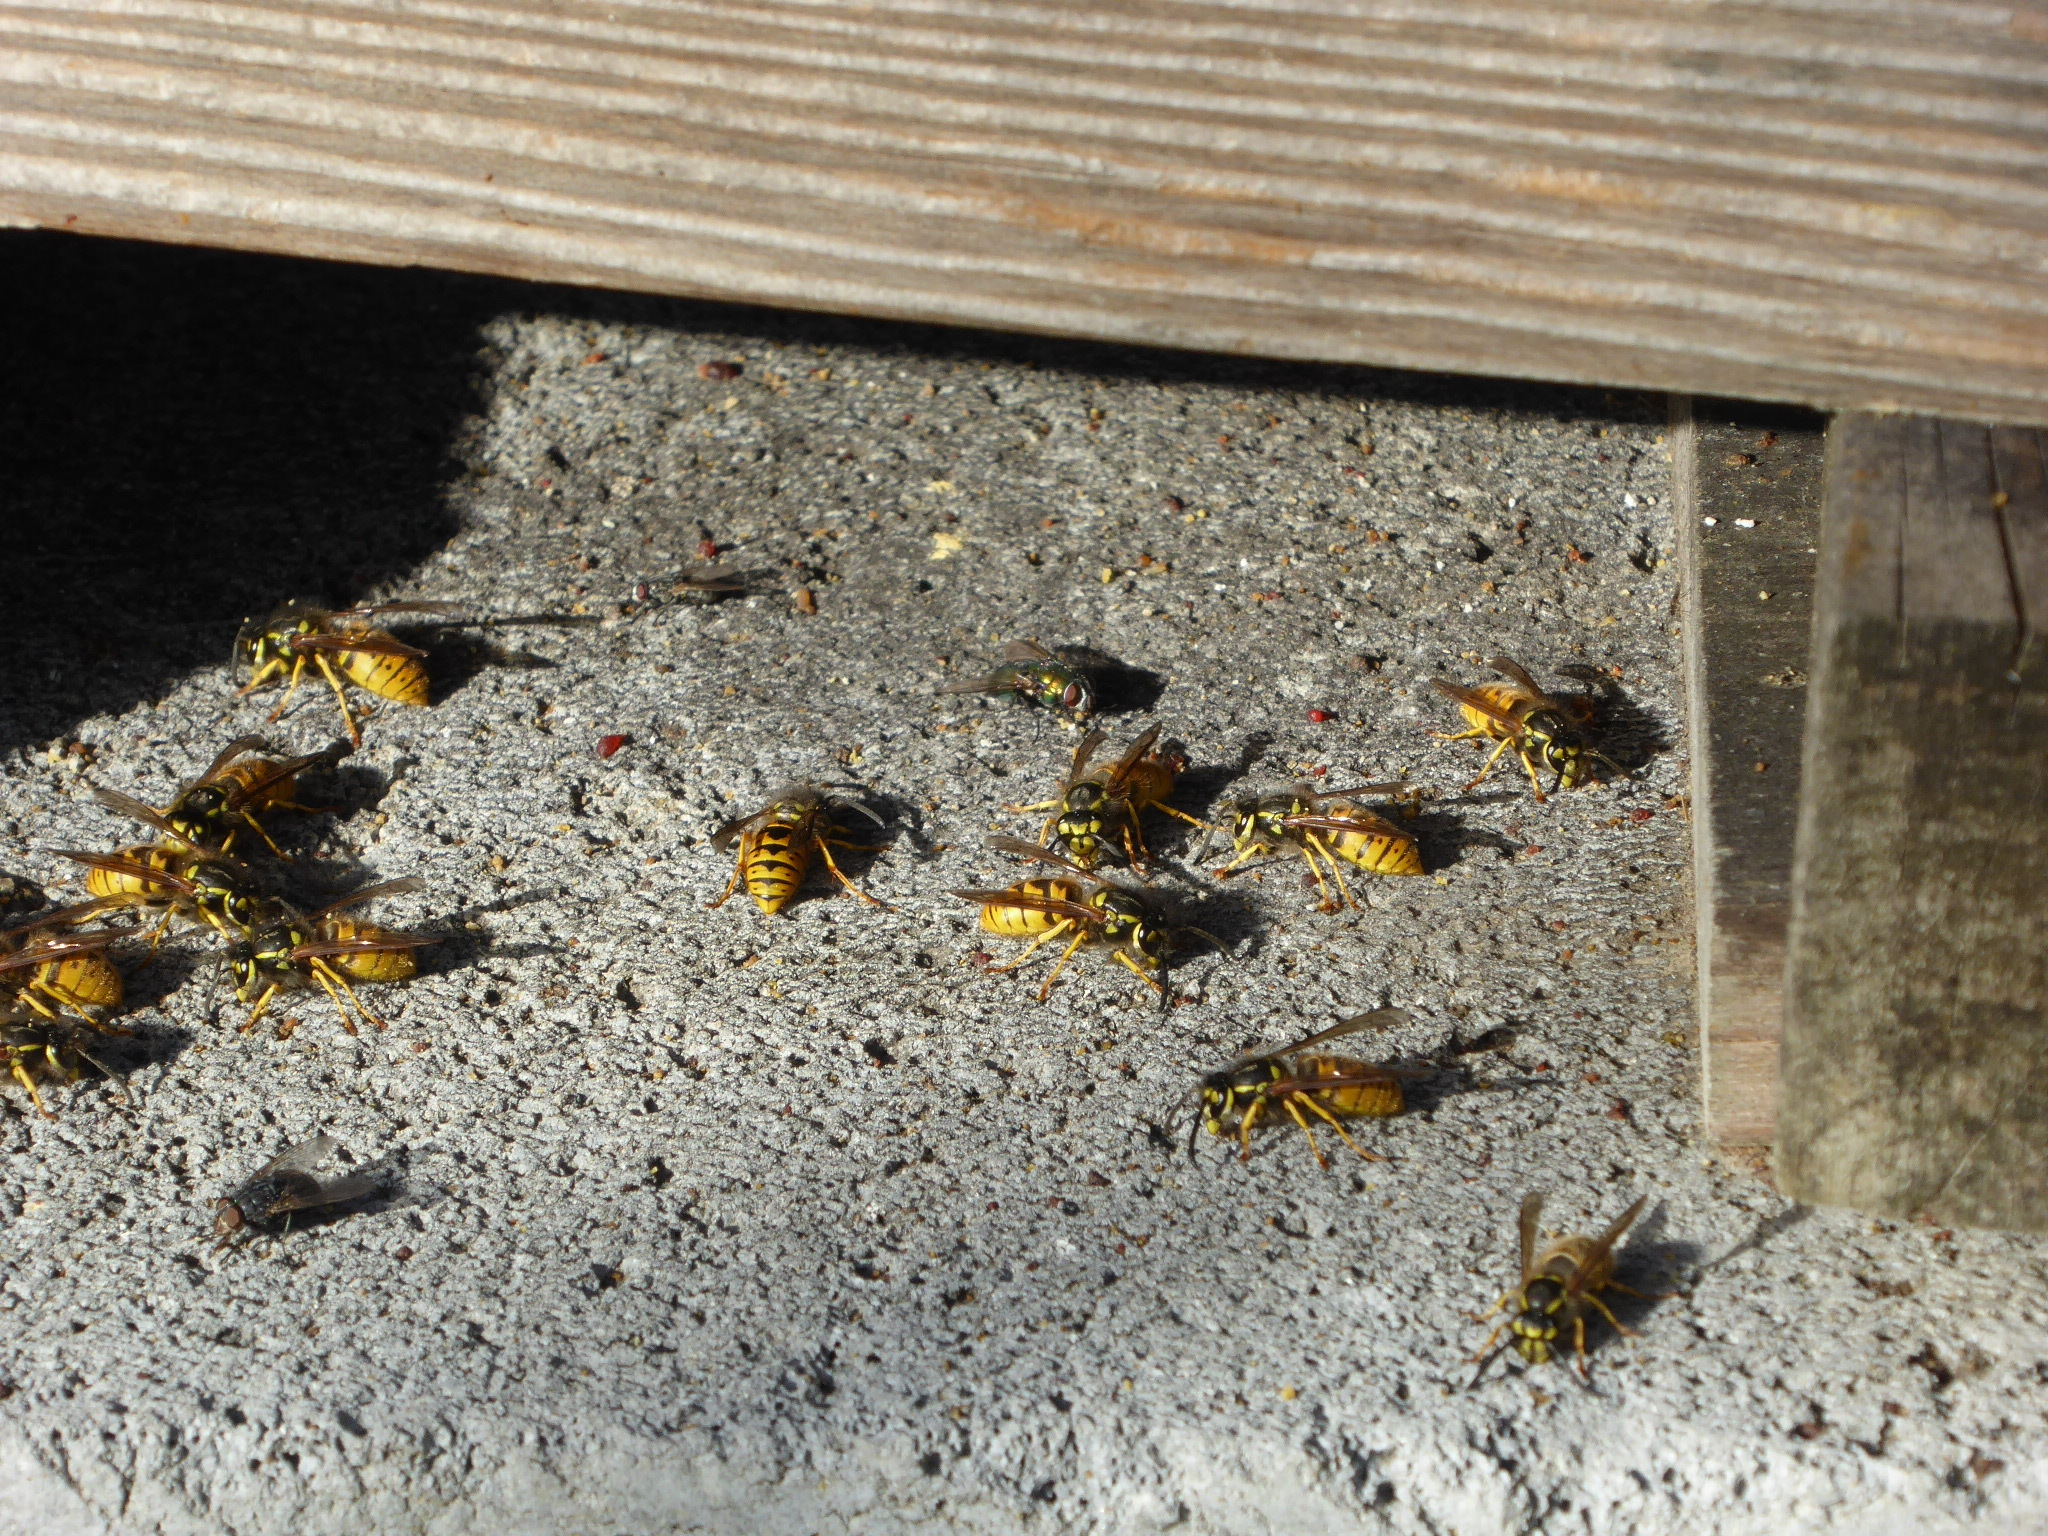 Wasps_beneath_hive_Dec18